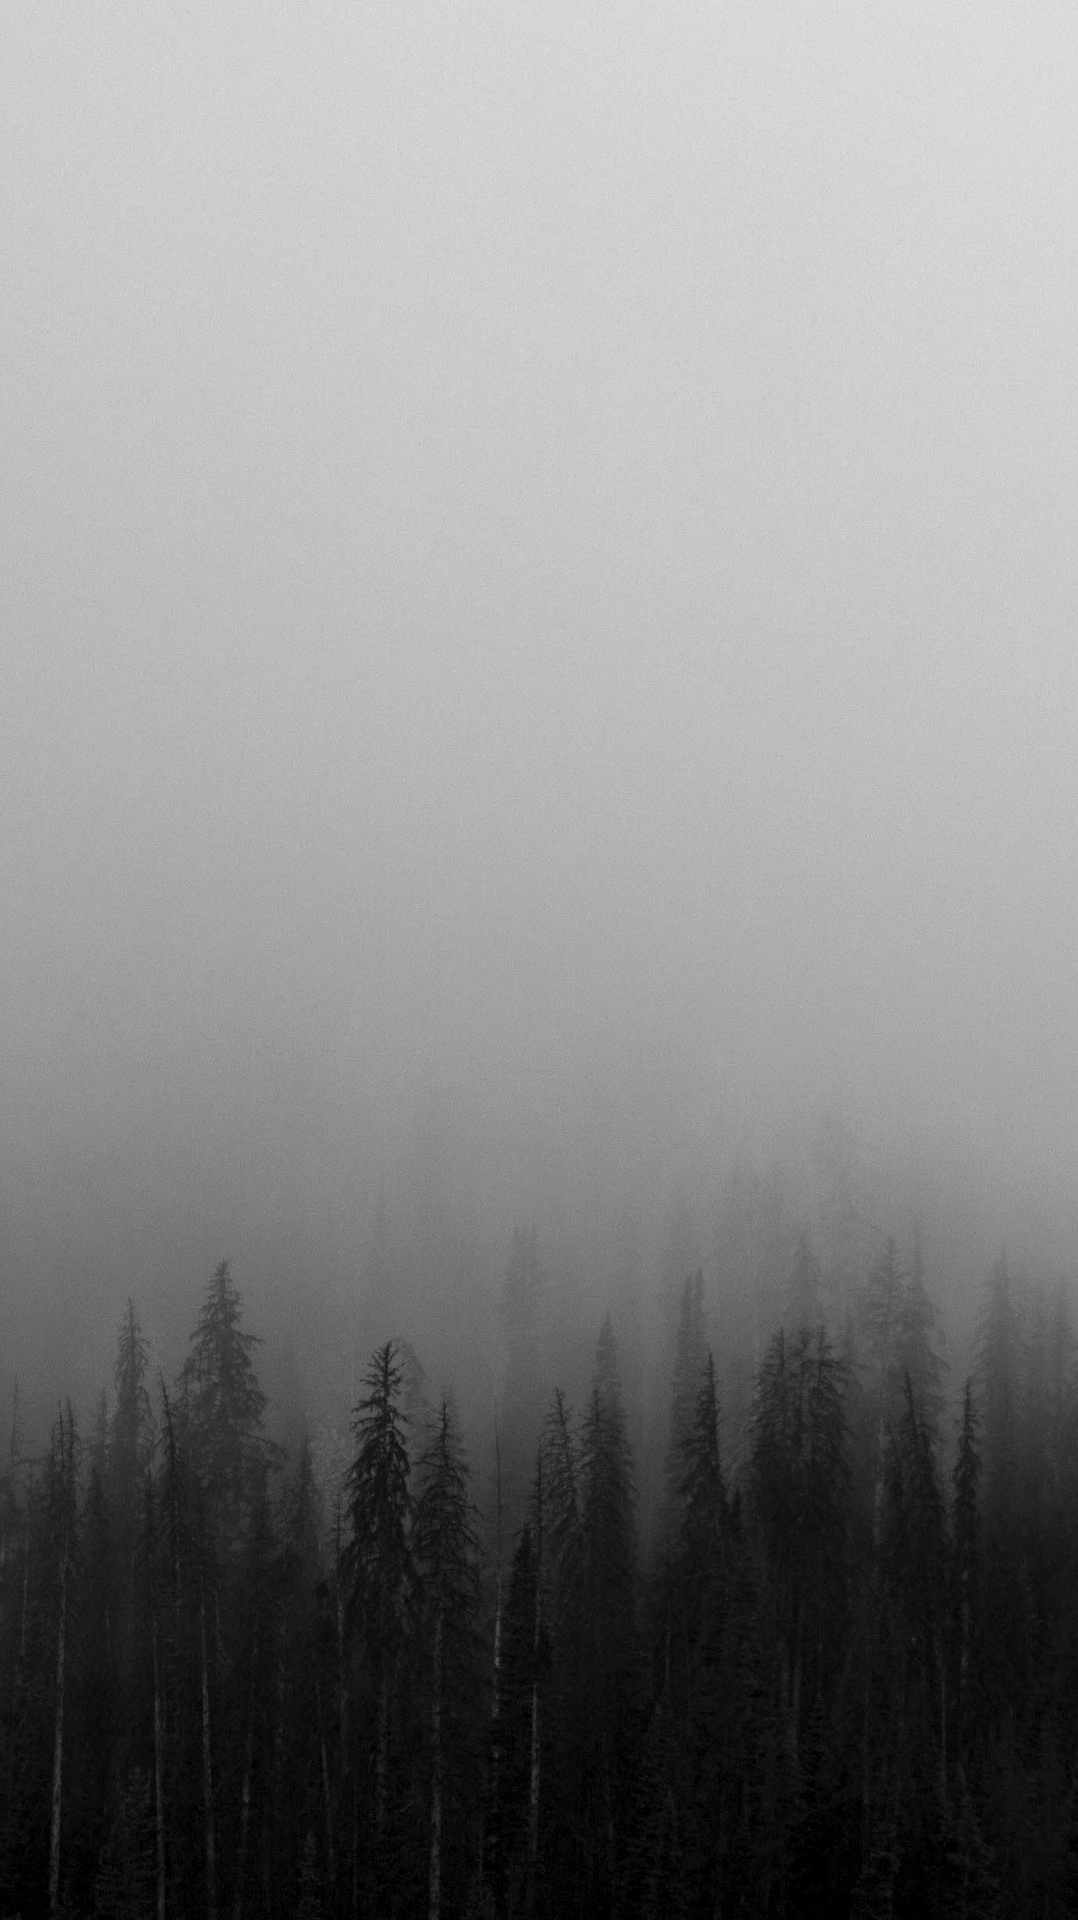 Black and white mist forests wallpaper iphone wallpapers - Black and white hd wallpapers black background ...